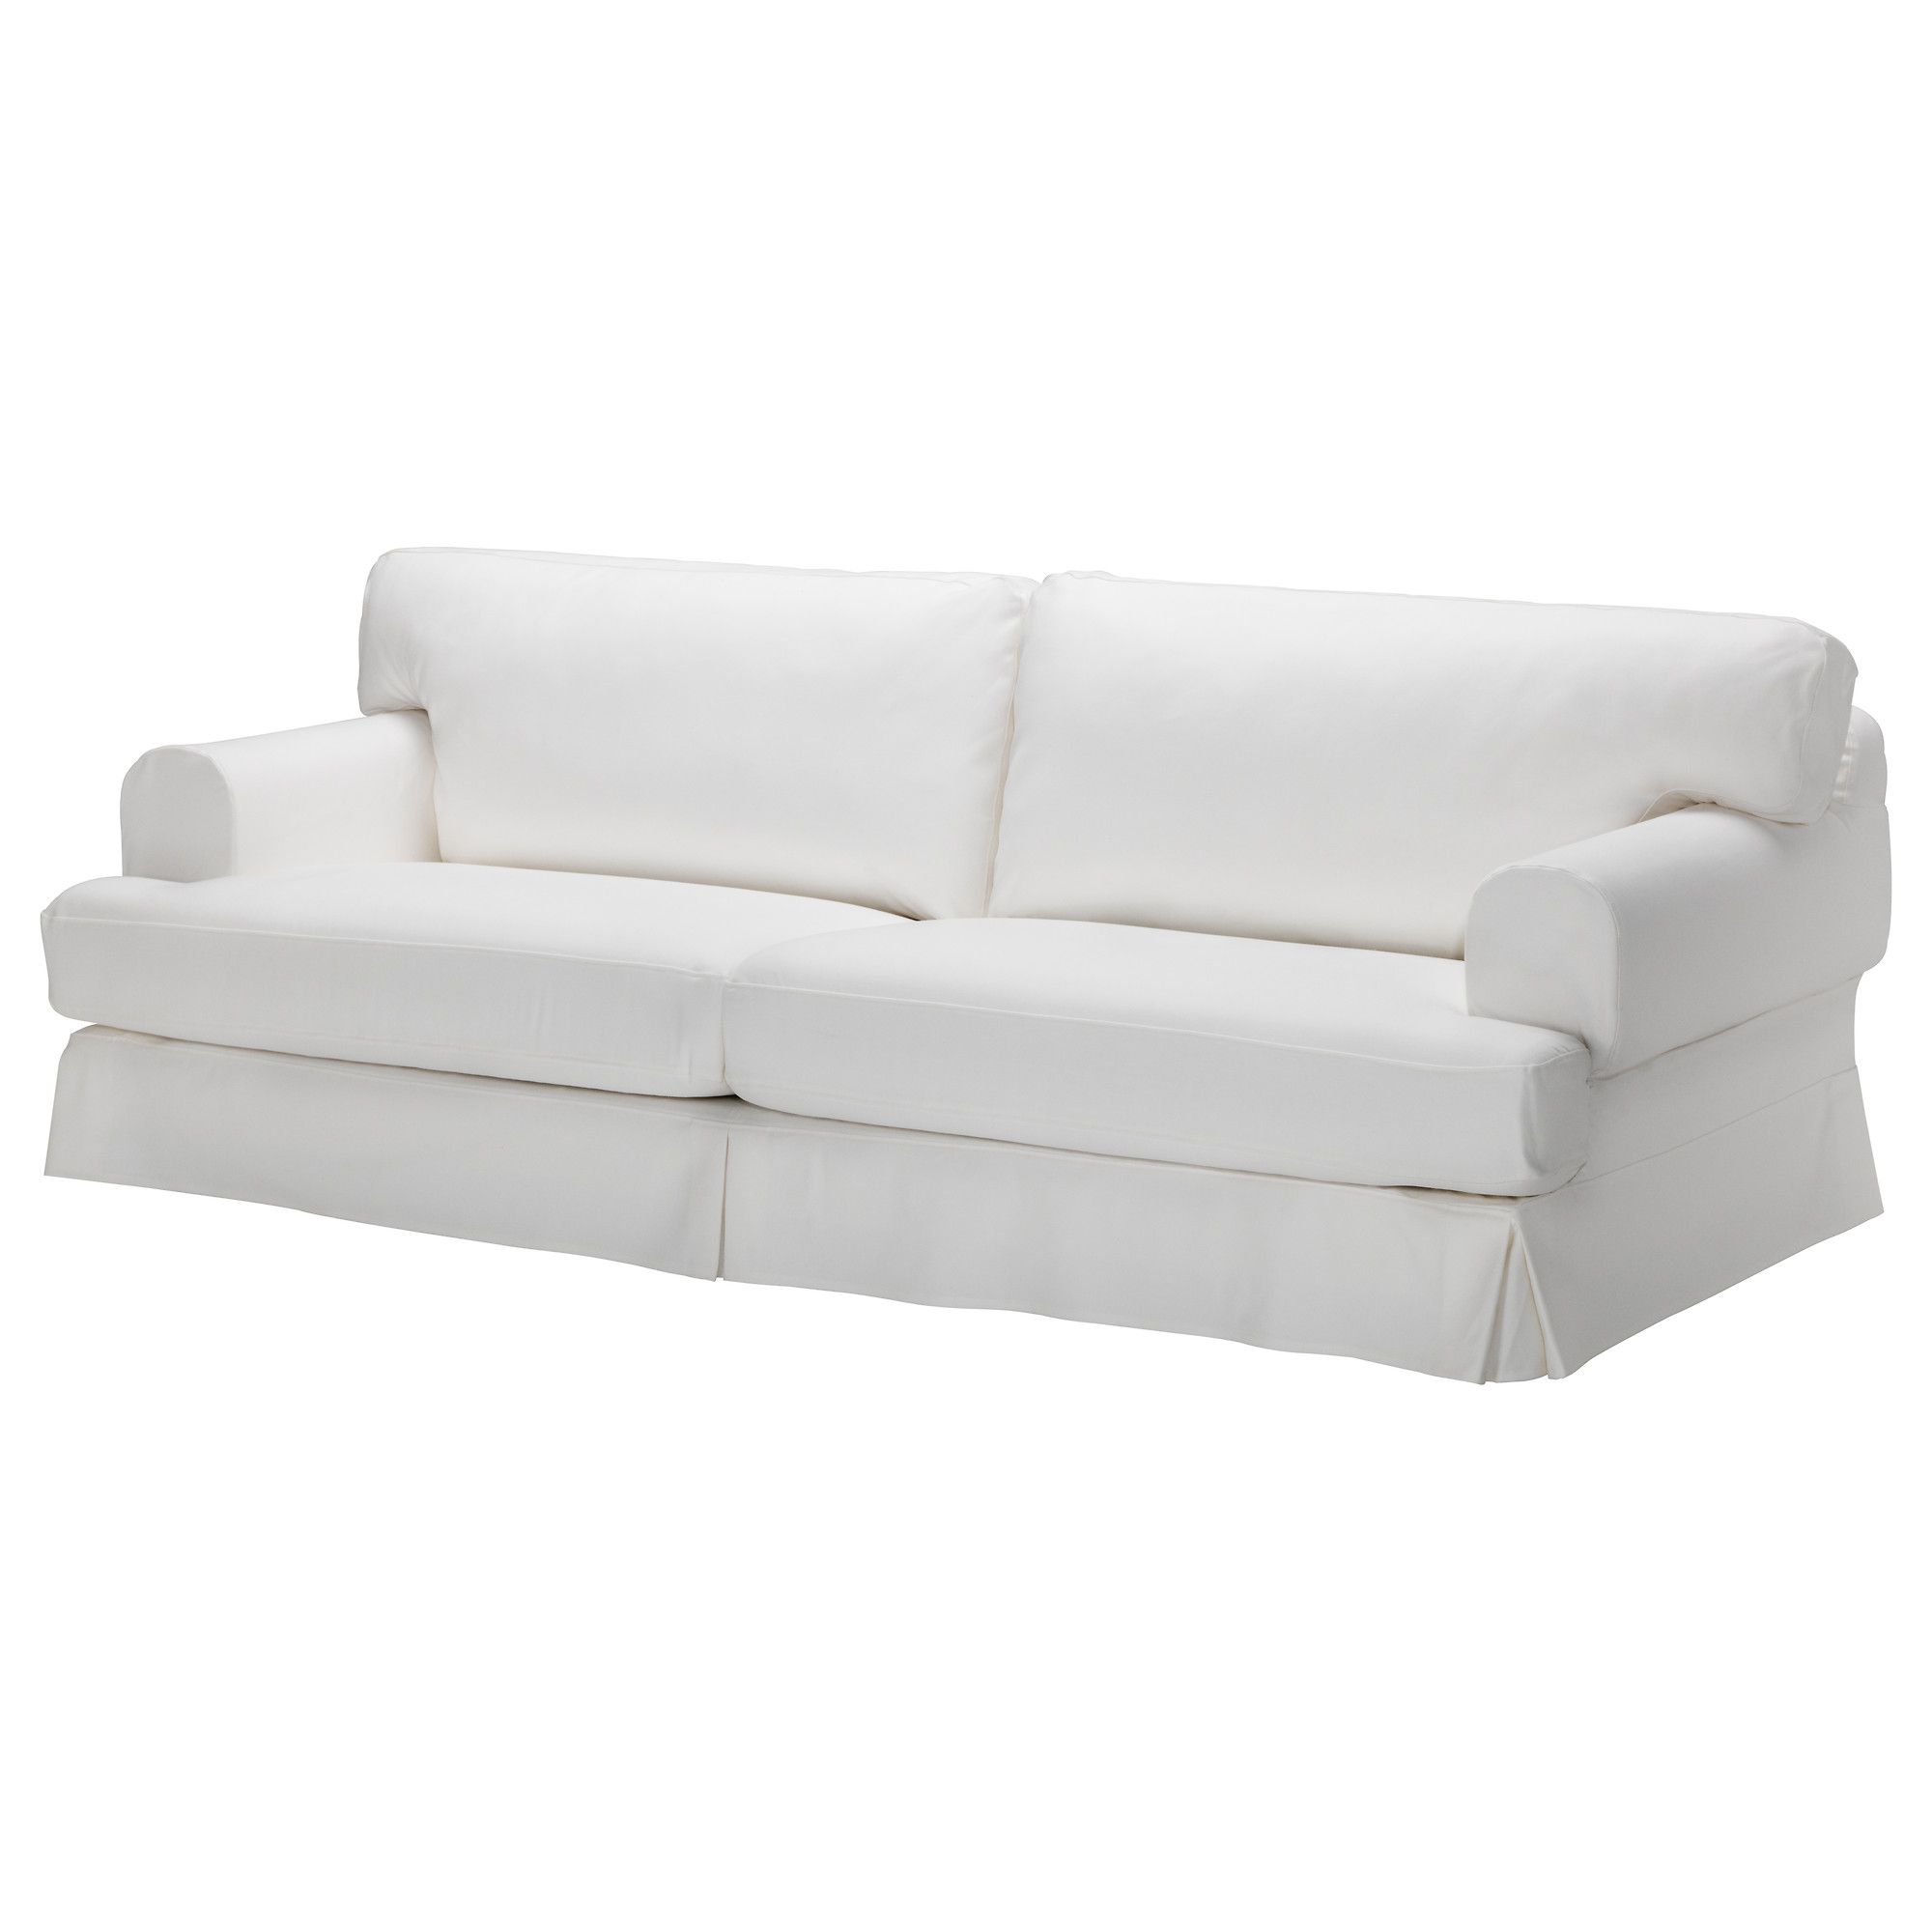 HOVÅS Sofa - Gobo white - IKEA This probably won't be ...